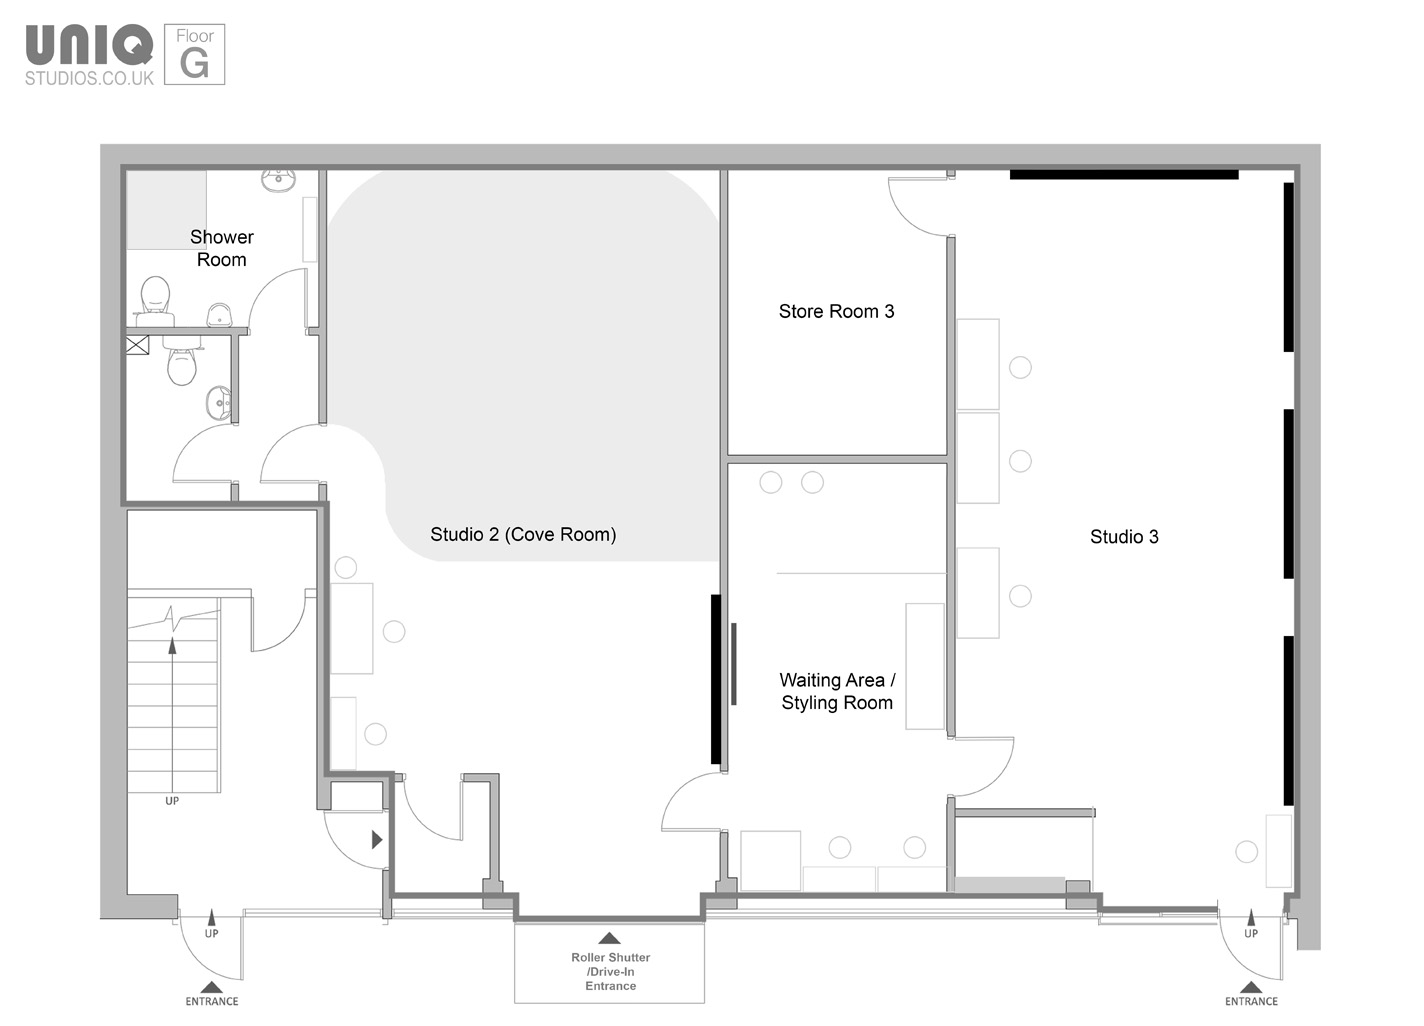 Photo Studio Hire Floor Plan Video and Casting Space Rental London